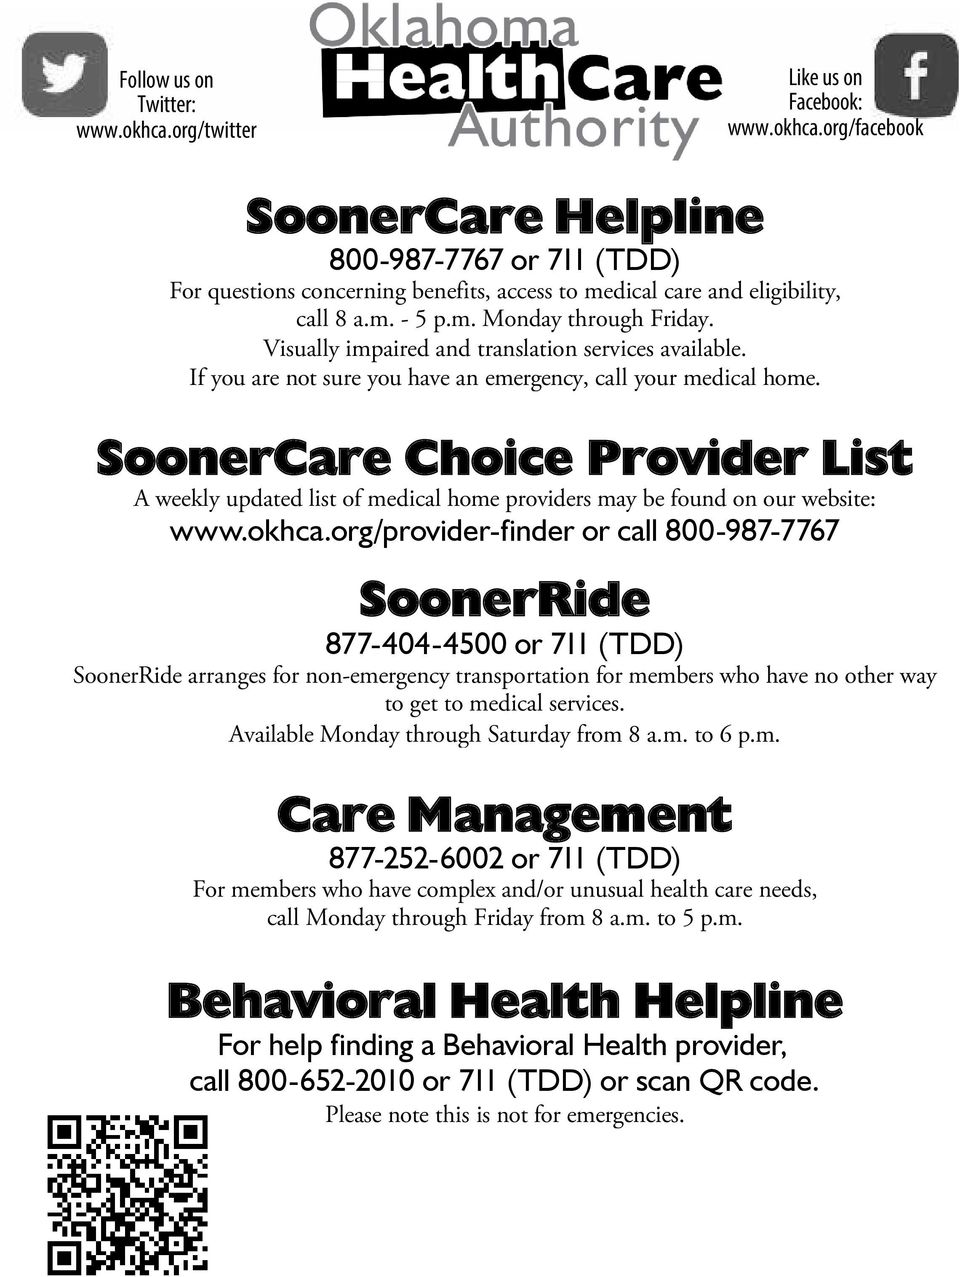 SoonerCare Choice Provider List A weekly updated list of medical home providers may be found on our website: www.okhca.